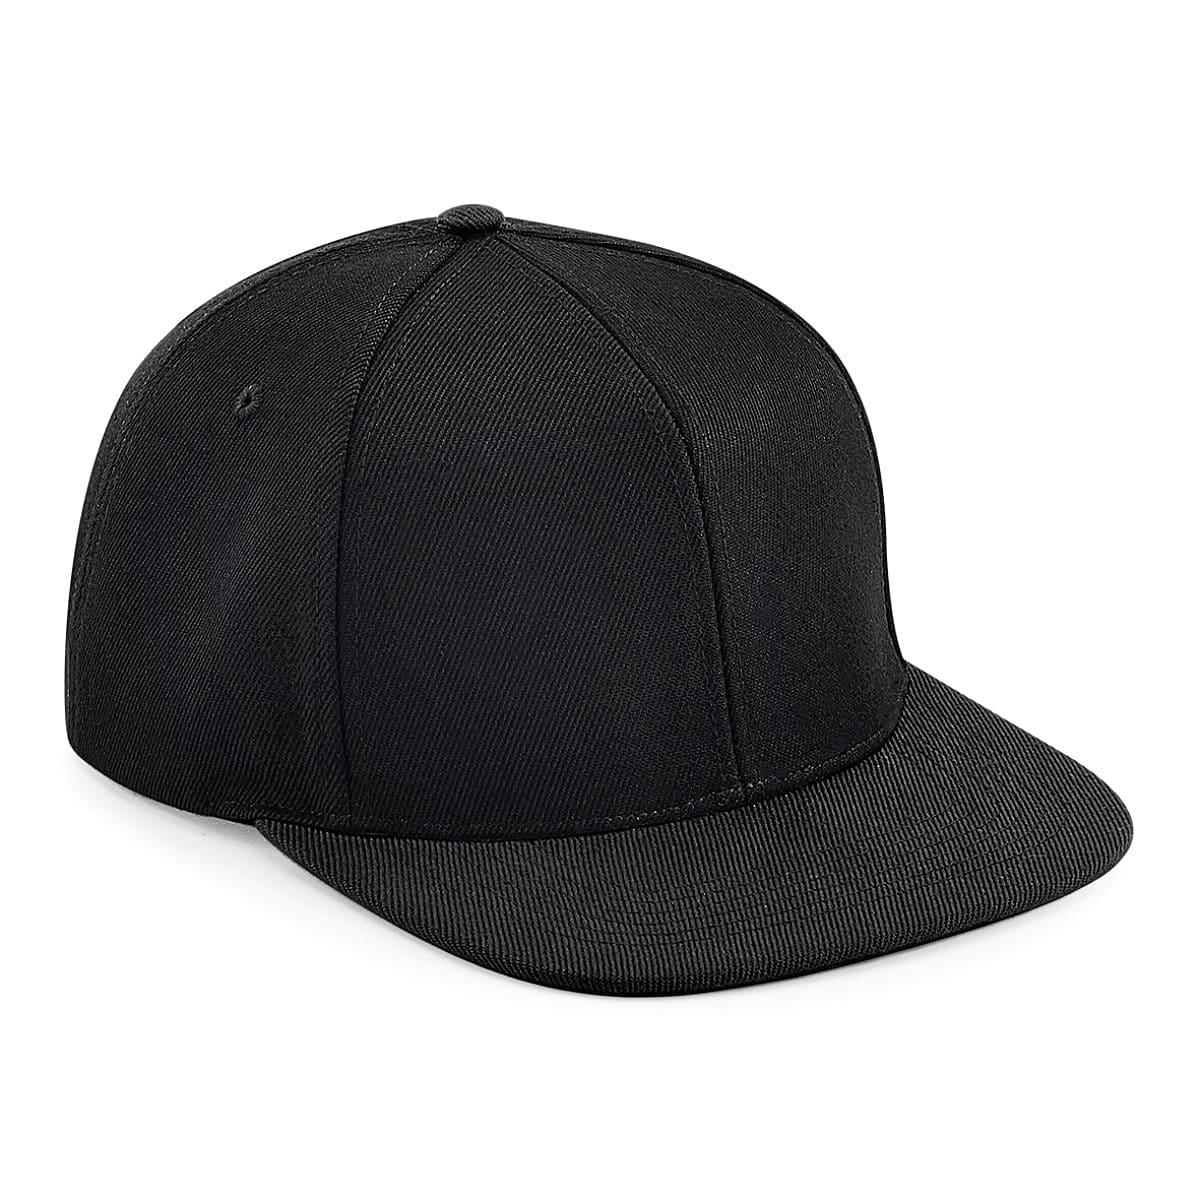 Original Flat Peak 6 Panel Snapback Cap in Black (Product Code: B661)